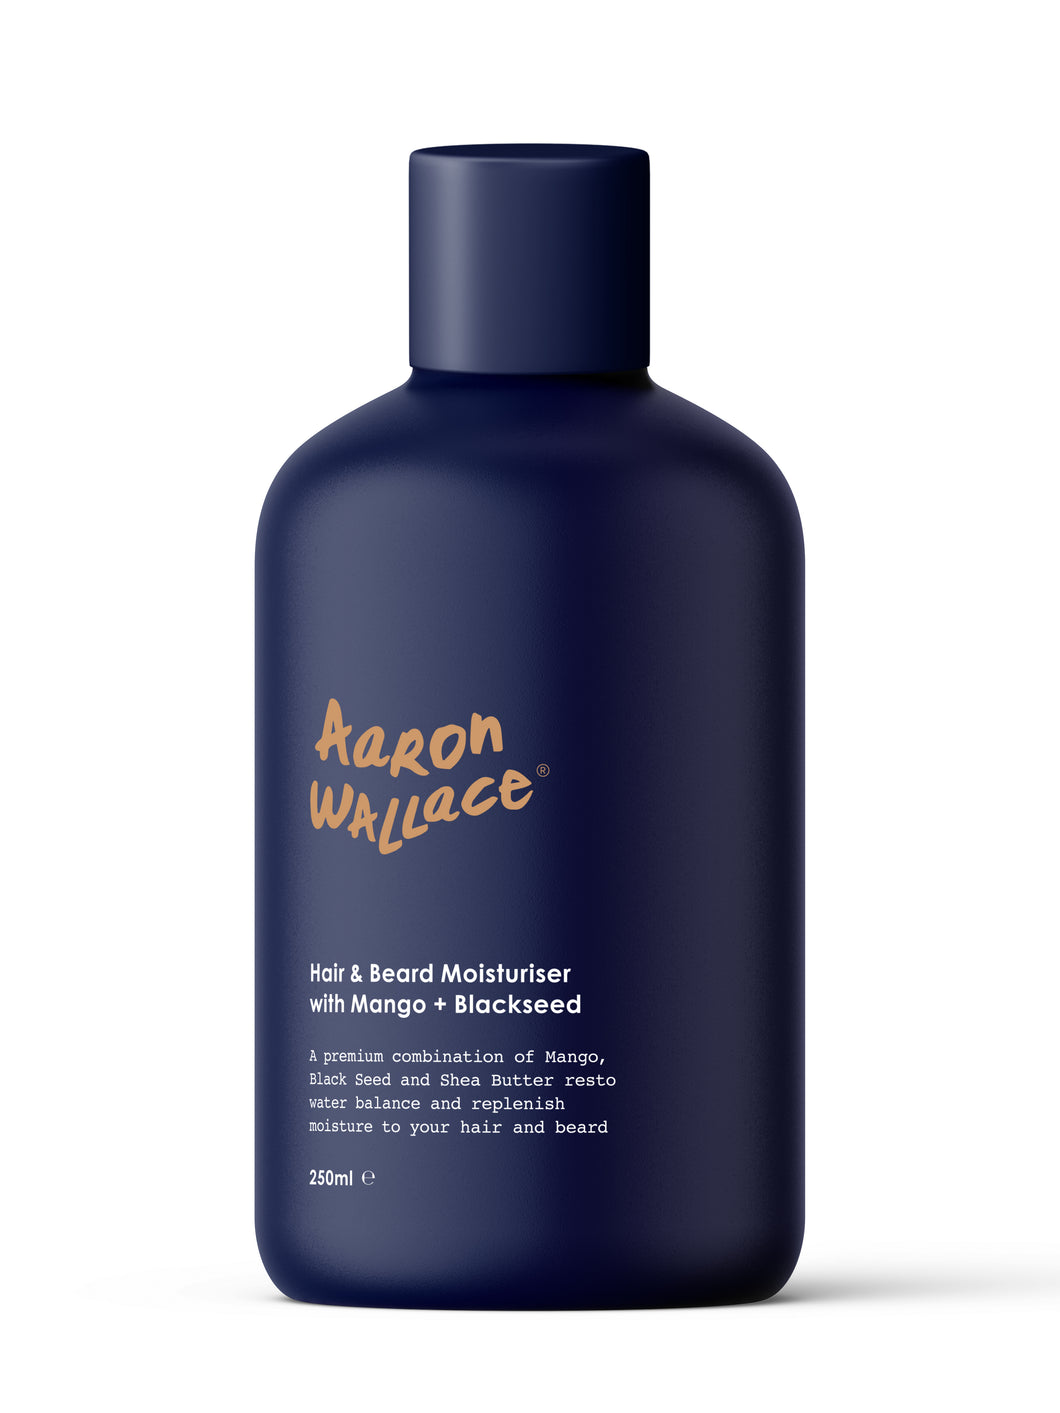 AARON WALLACE Hair & Beard Moisturiser With Mango Butter + Blackseed Oil (250ml)